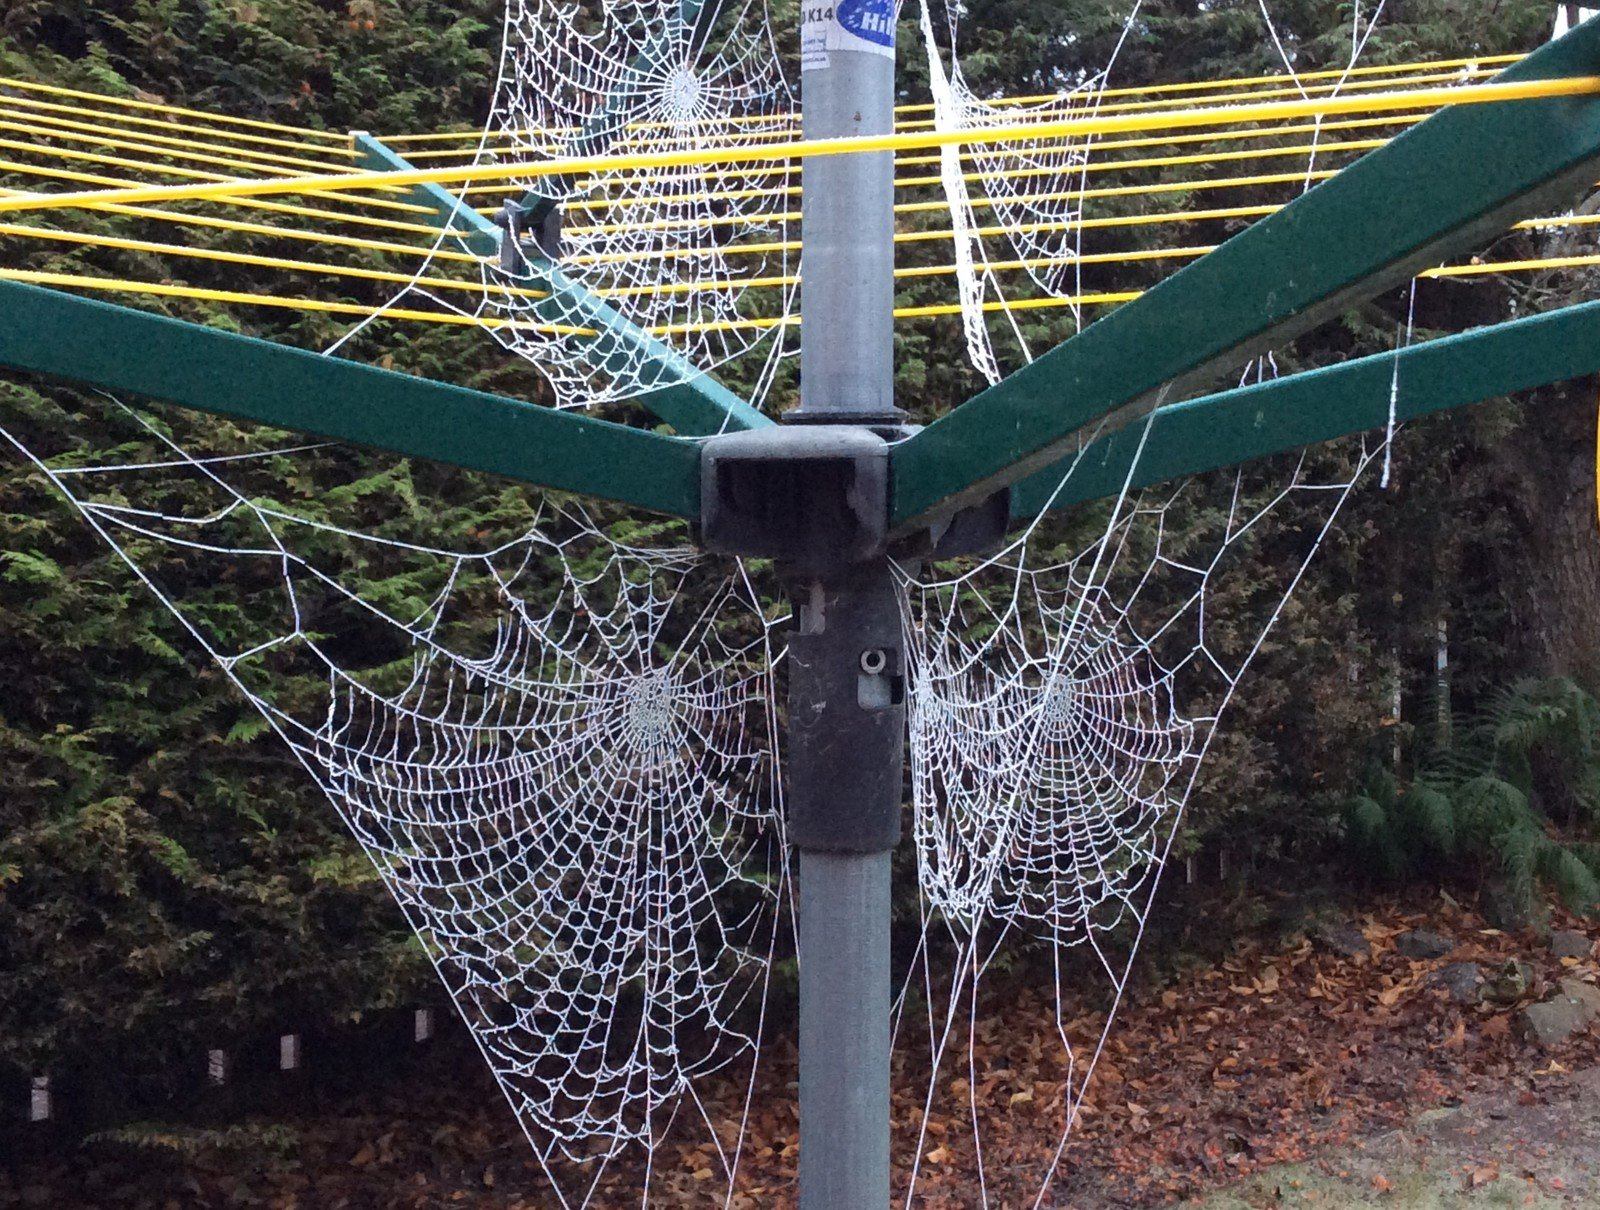 Frosty cobwebs cling to my rotary clothes line